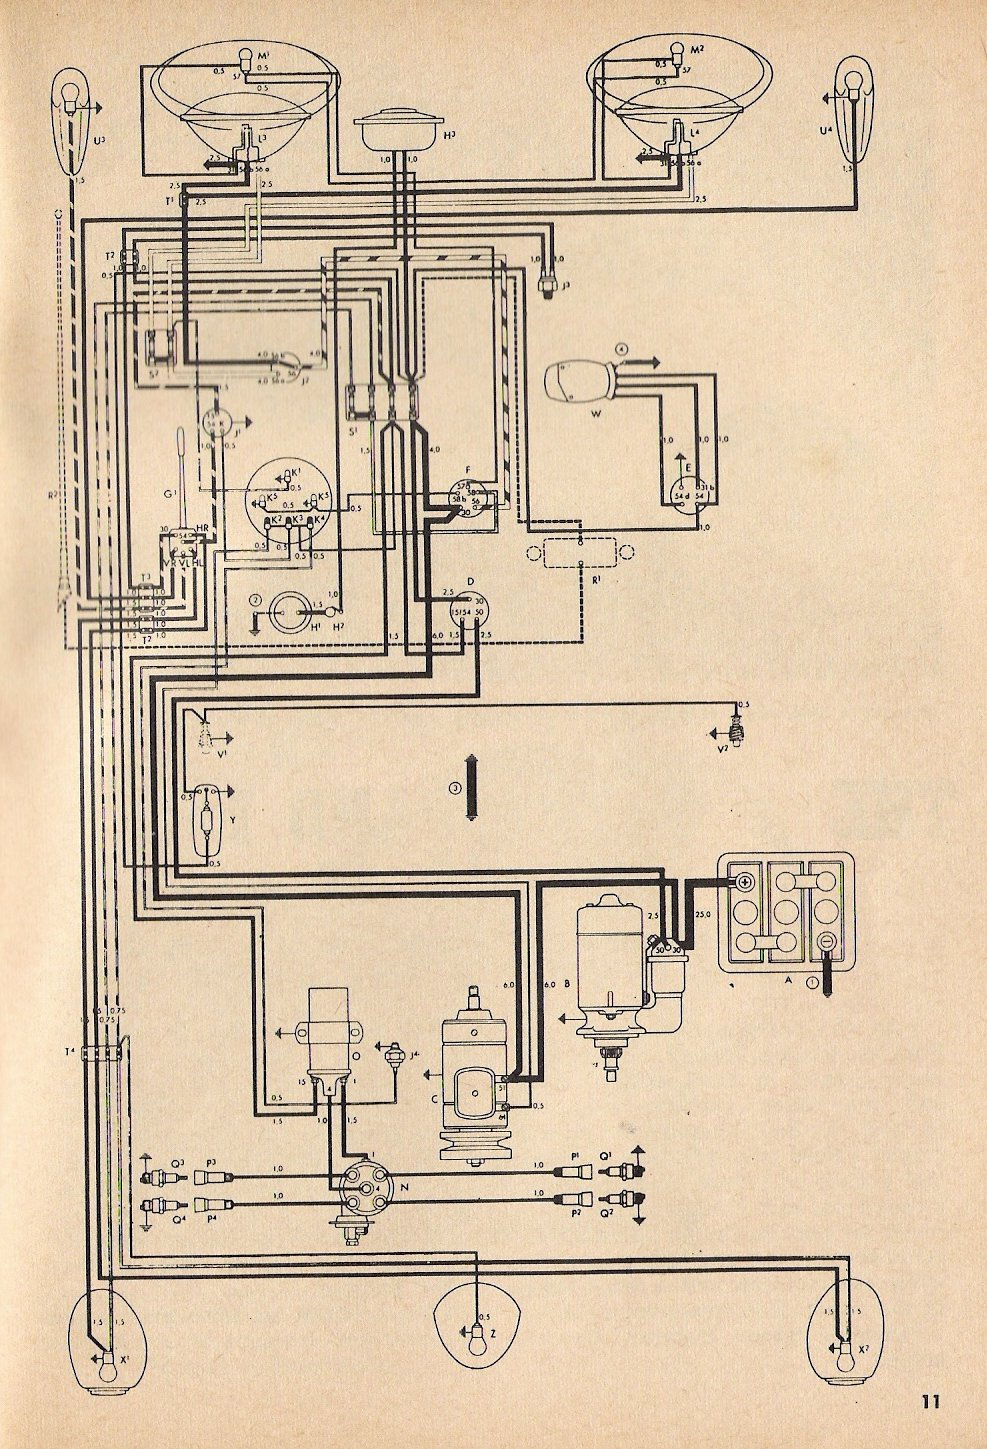 1970 chevy truck fuse box diagram with 1975 Vw Beetle Wiring Diagram on 1970 Chevelle Horn Relay Wiring Diagram moreover Painless Wiring Diagram For 1980 Chevy Truck in addition Tata besides Installing Of Honeywell Wi Fi Programmable Thermostat likewise 1970 Vw Turn Signal Wiring Diagram.